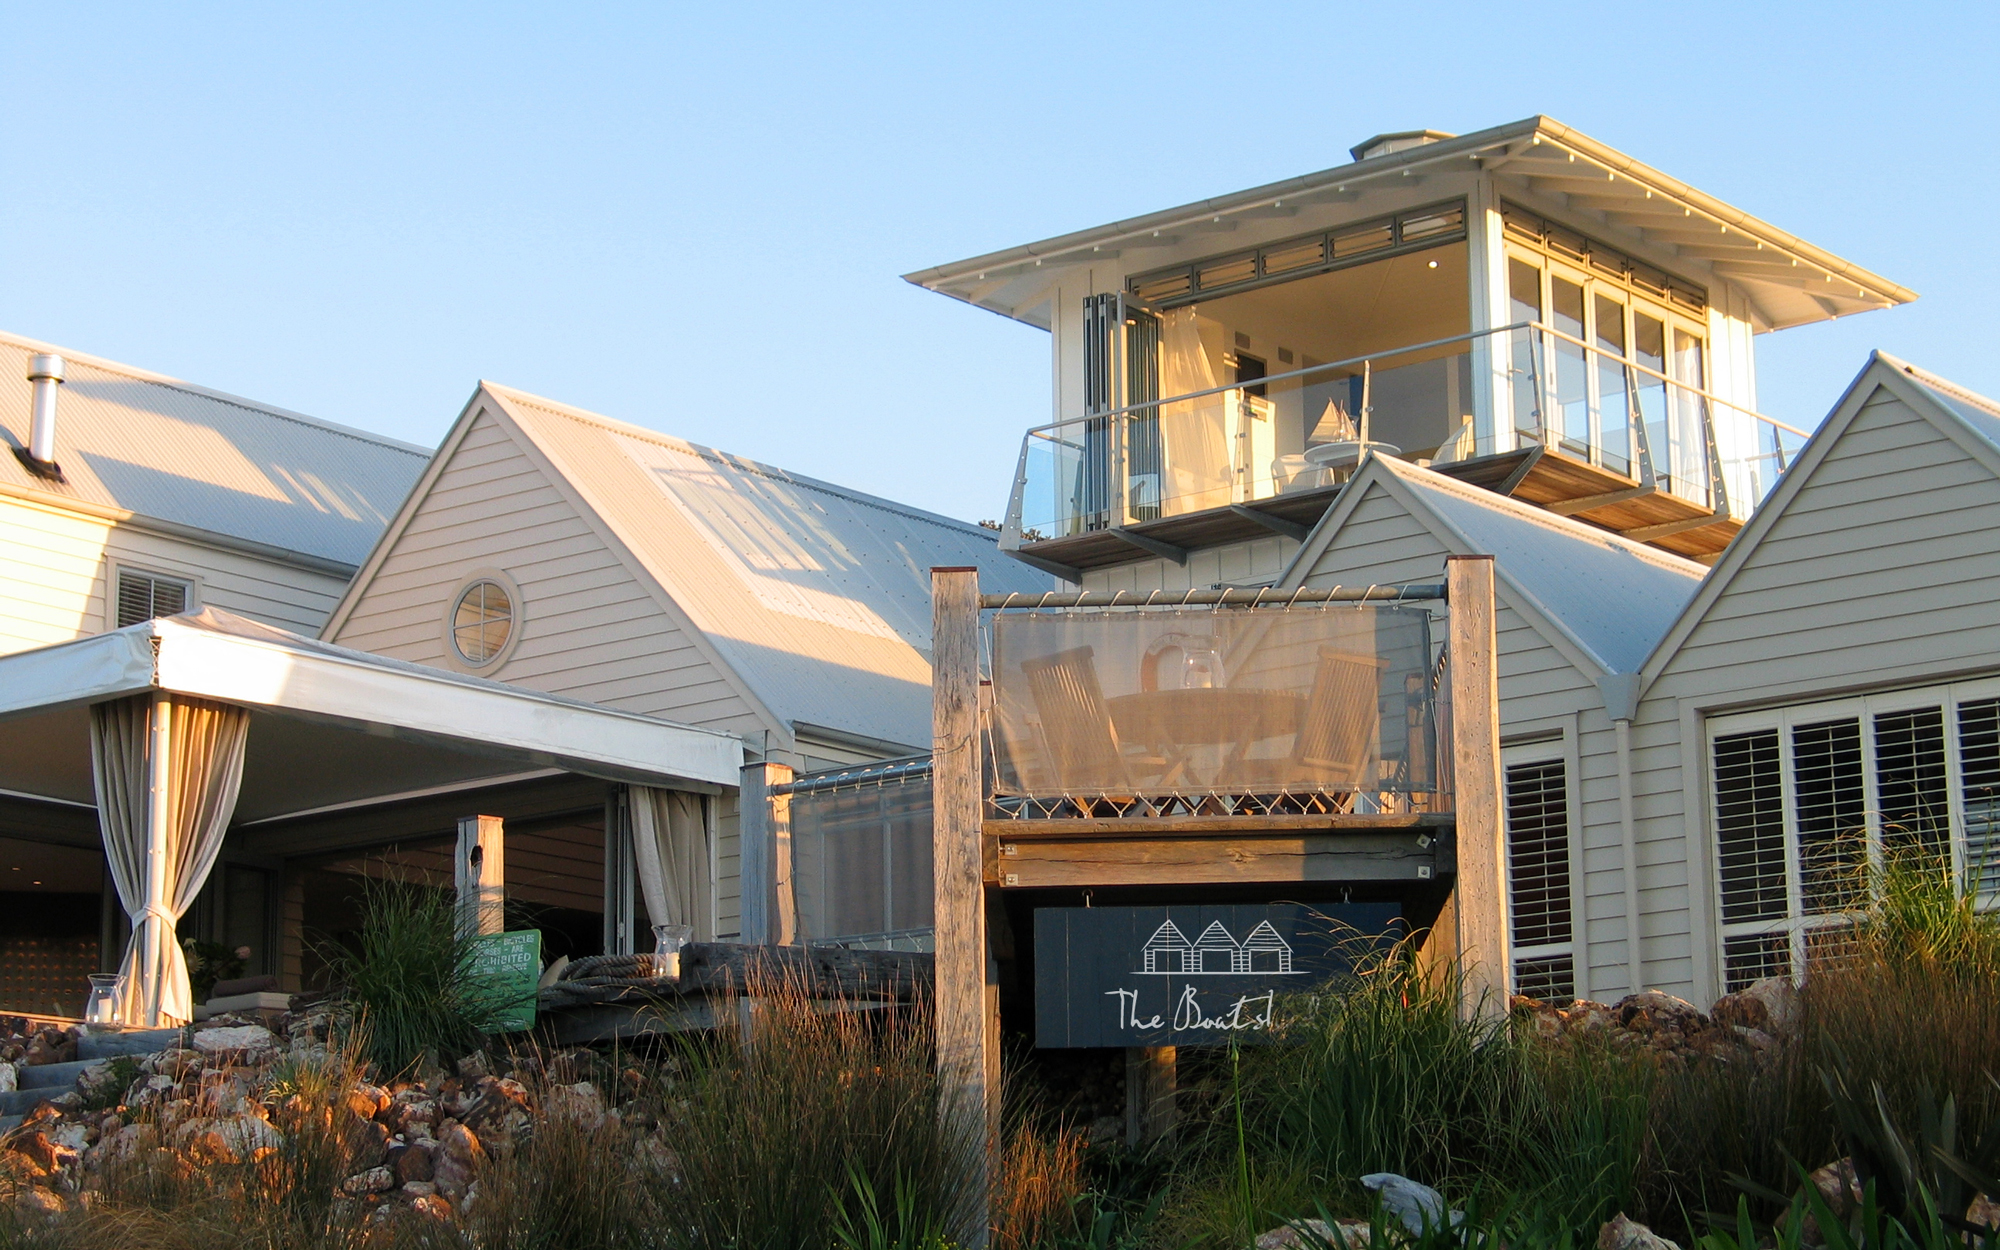 The Boatshed Hotel